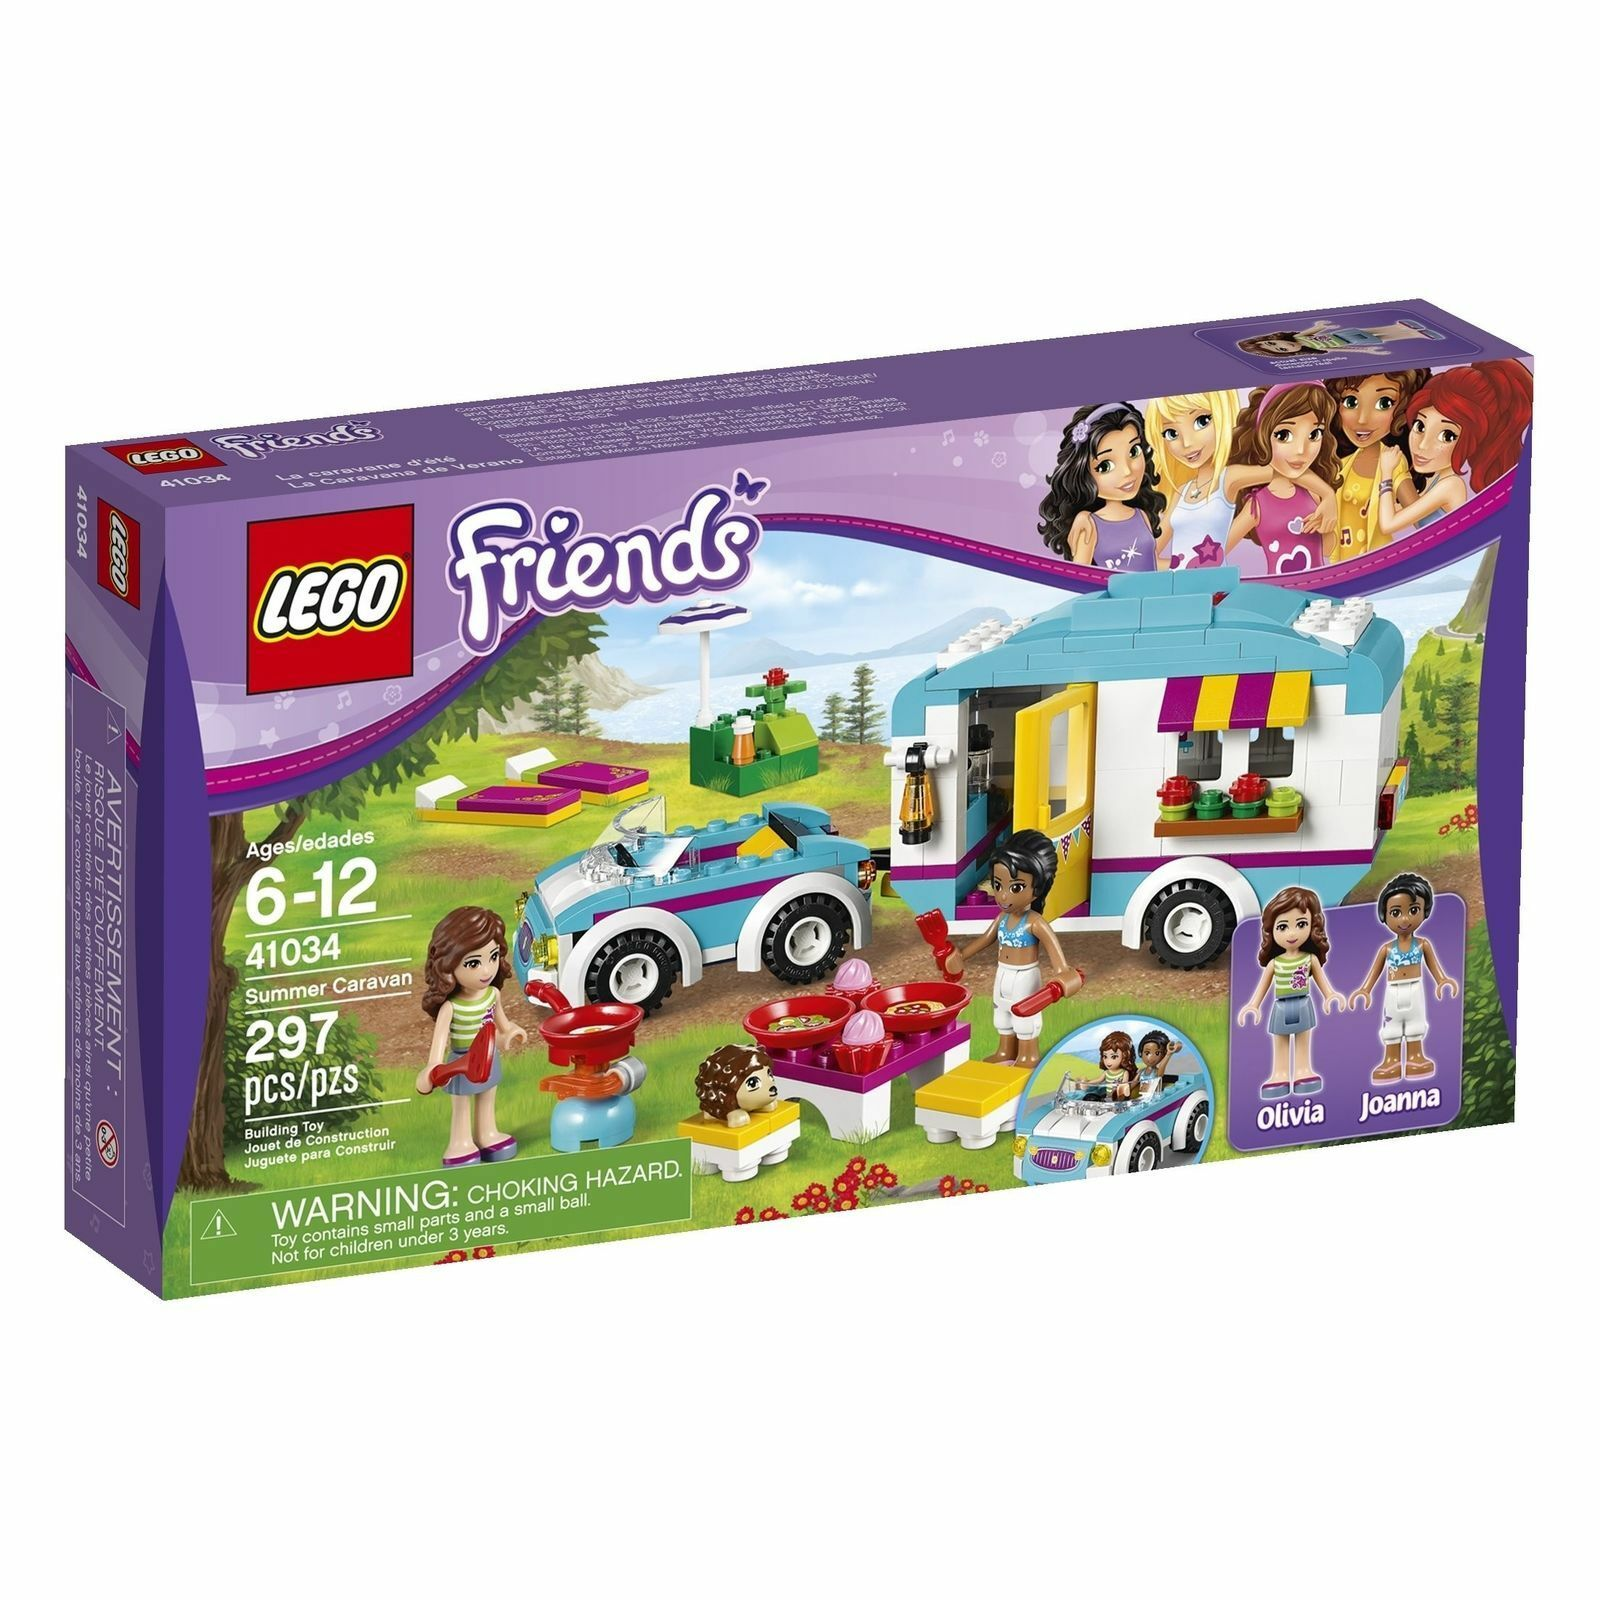 LEGOFRIENDSSummer Caravan Building Set41034NEWSEALED BOX